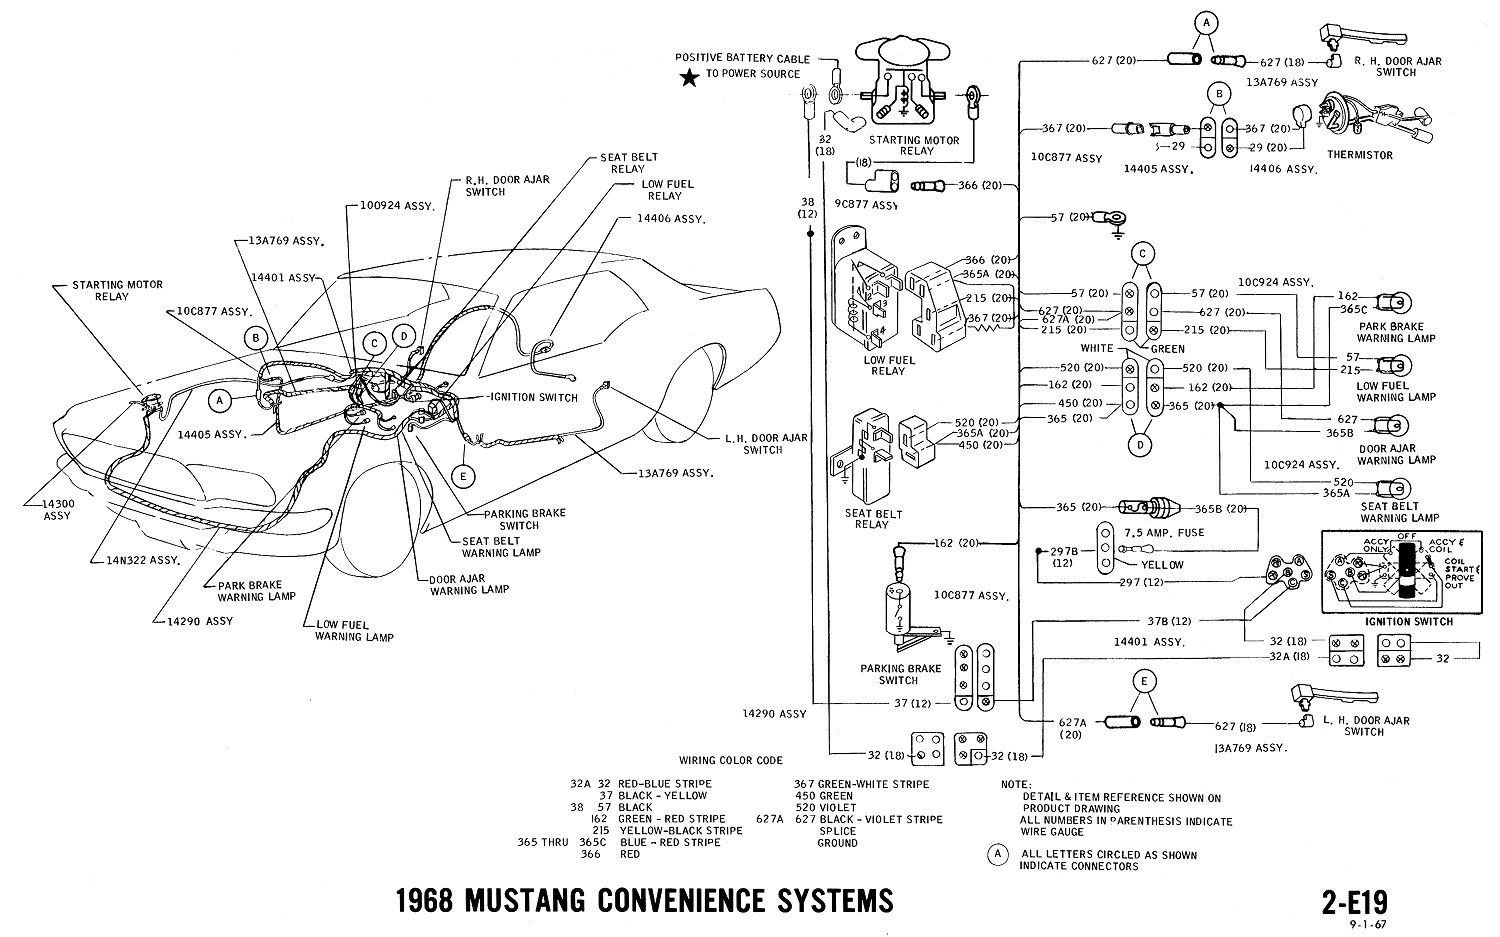 1968 mustang wiring diagram convenience systems 65 mustang dash wiring diagram 66 mustang wiper switch wiring 1969 mustang wiring diagram online at gsmx.co